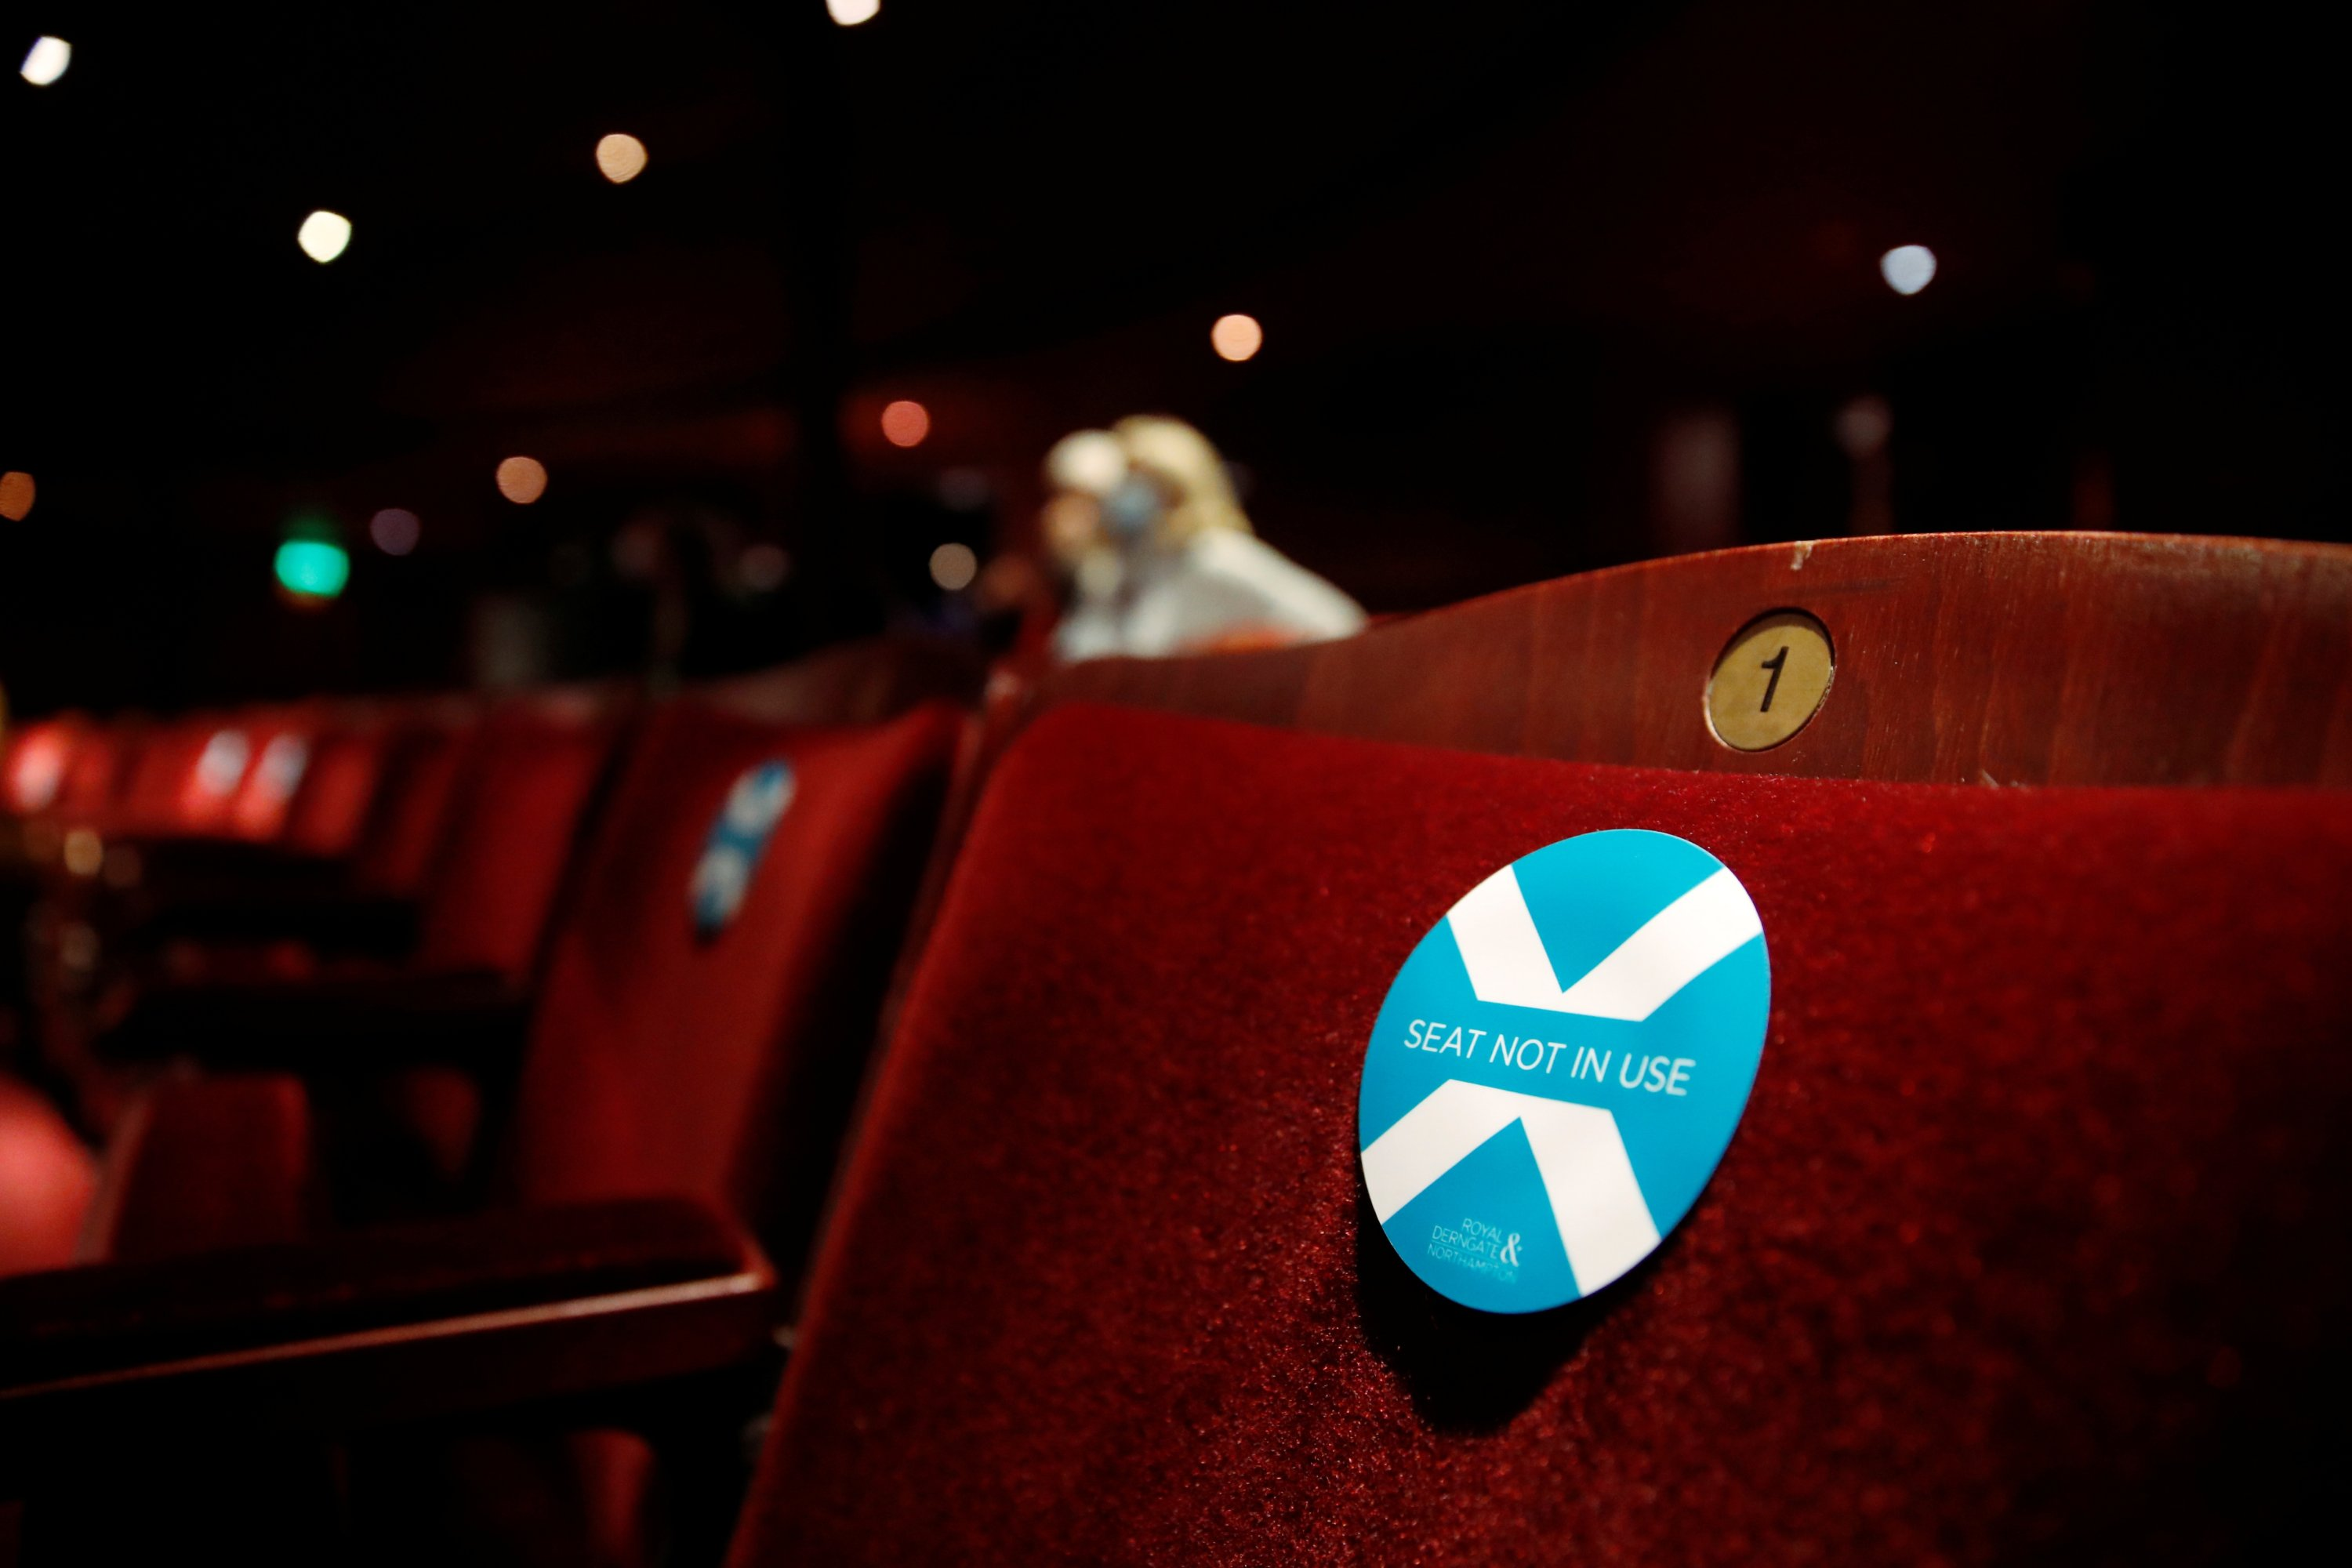 A sticker is pictured on an empty seat at the Royal & Derngate ahead of the start of the National Youth Theatre's co-production of 'Animal Farm' as COVID-19 restrictions continue to ease, in Northampton, U.K., May 17, 2021. (Reuters Photo)